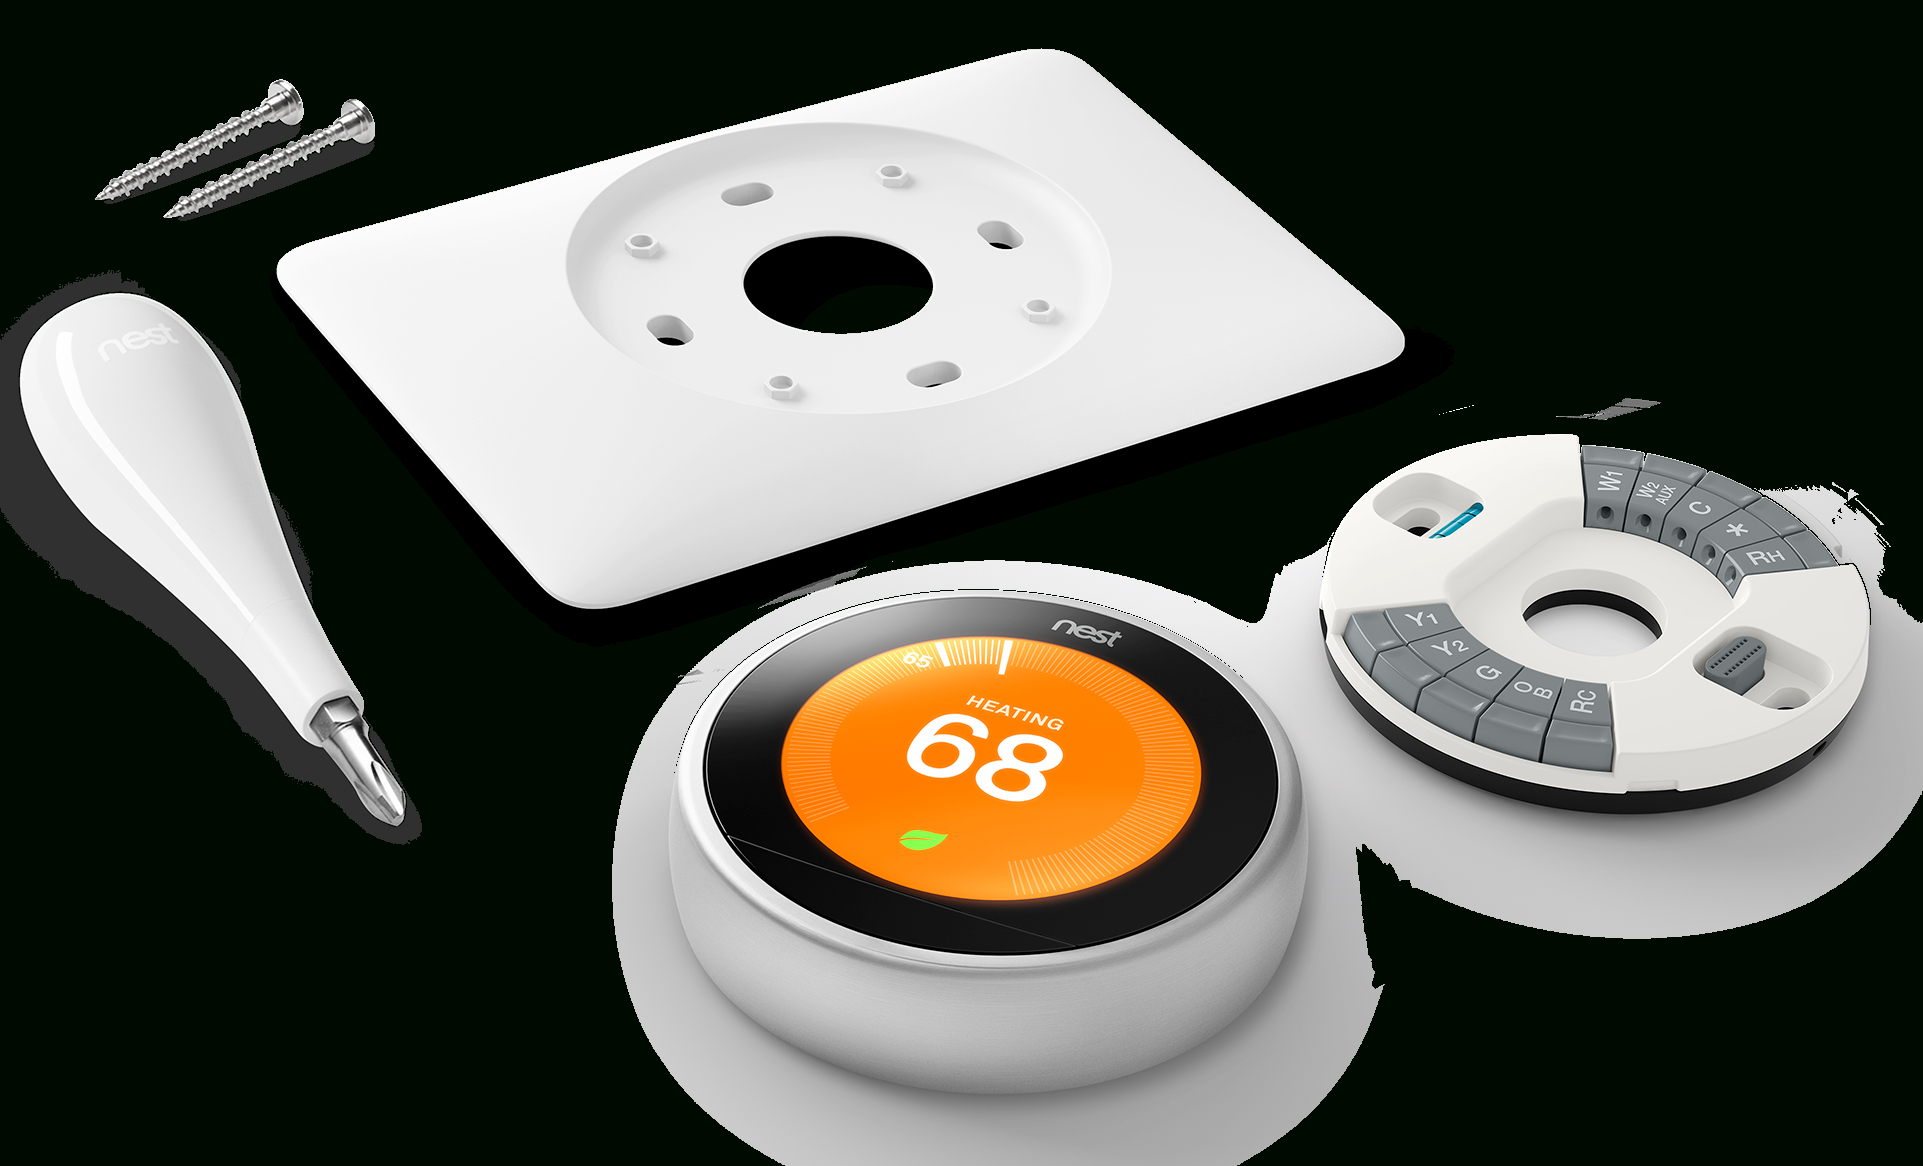 How To Install Your Nest Thermostat - Nest Thermostat Wiring Diagram Pdf